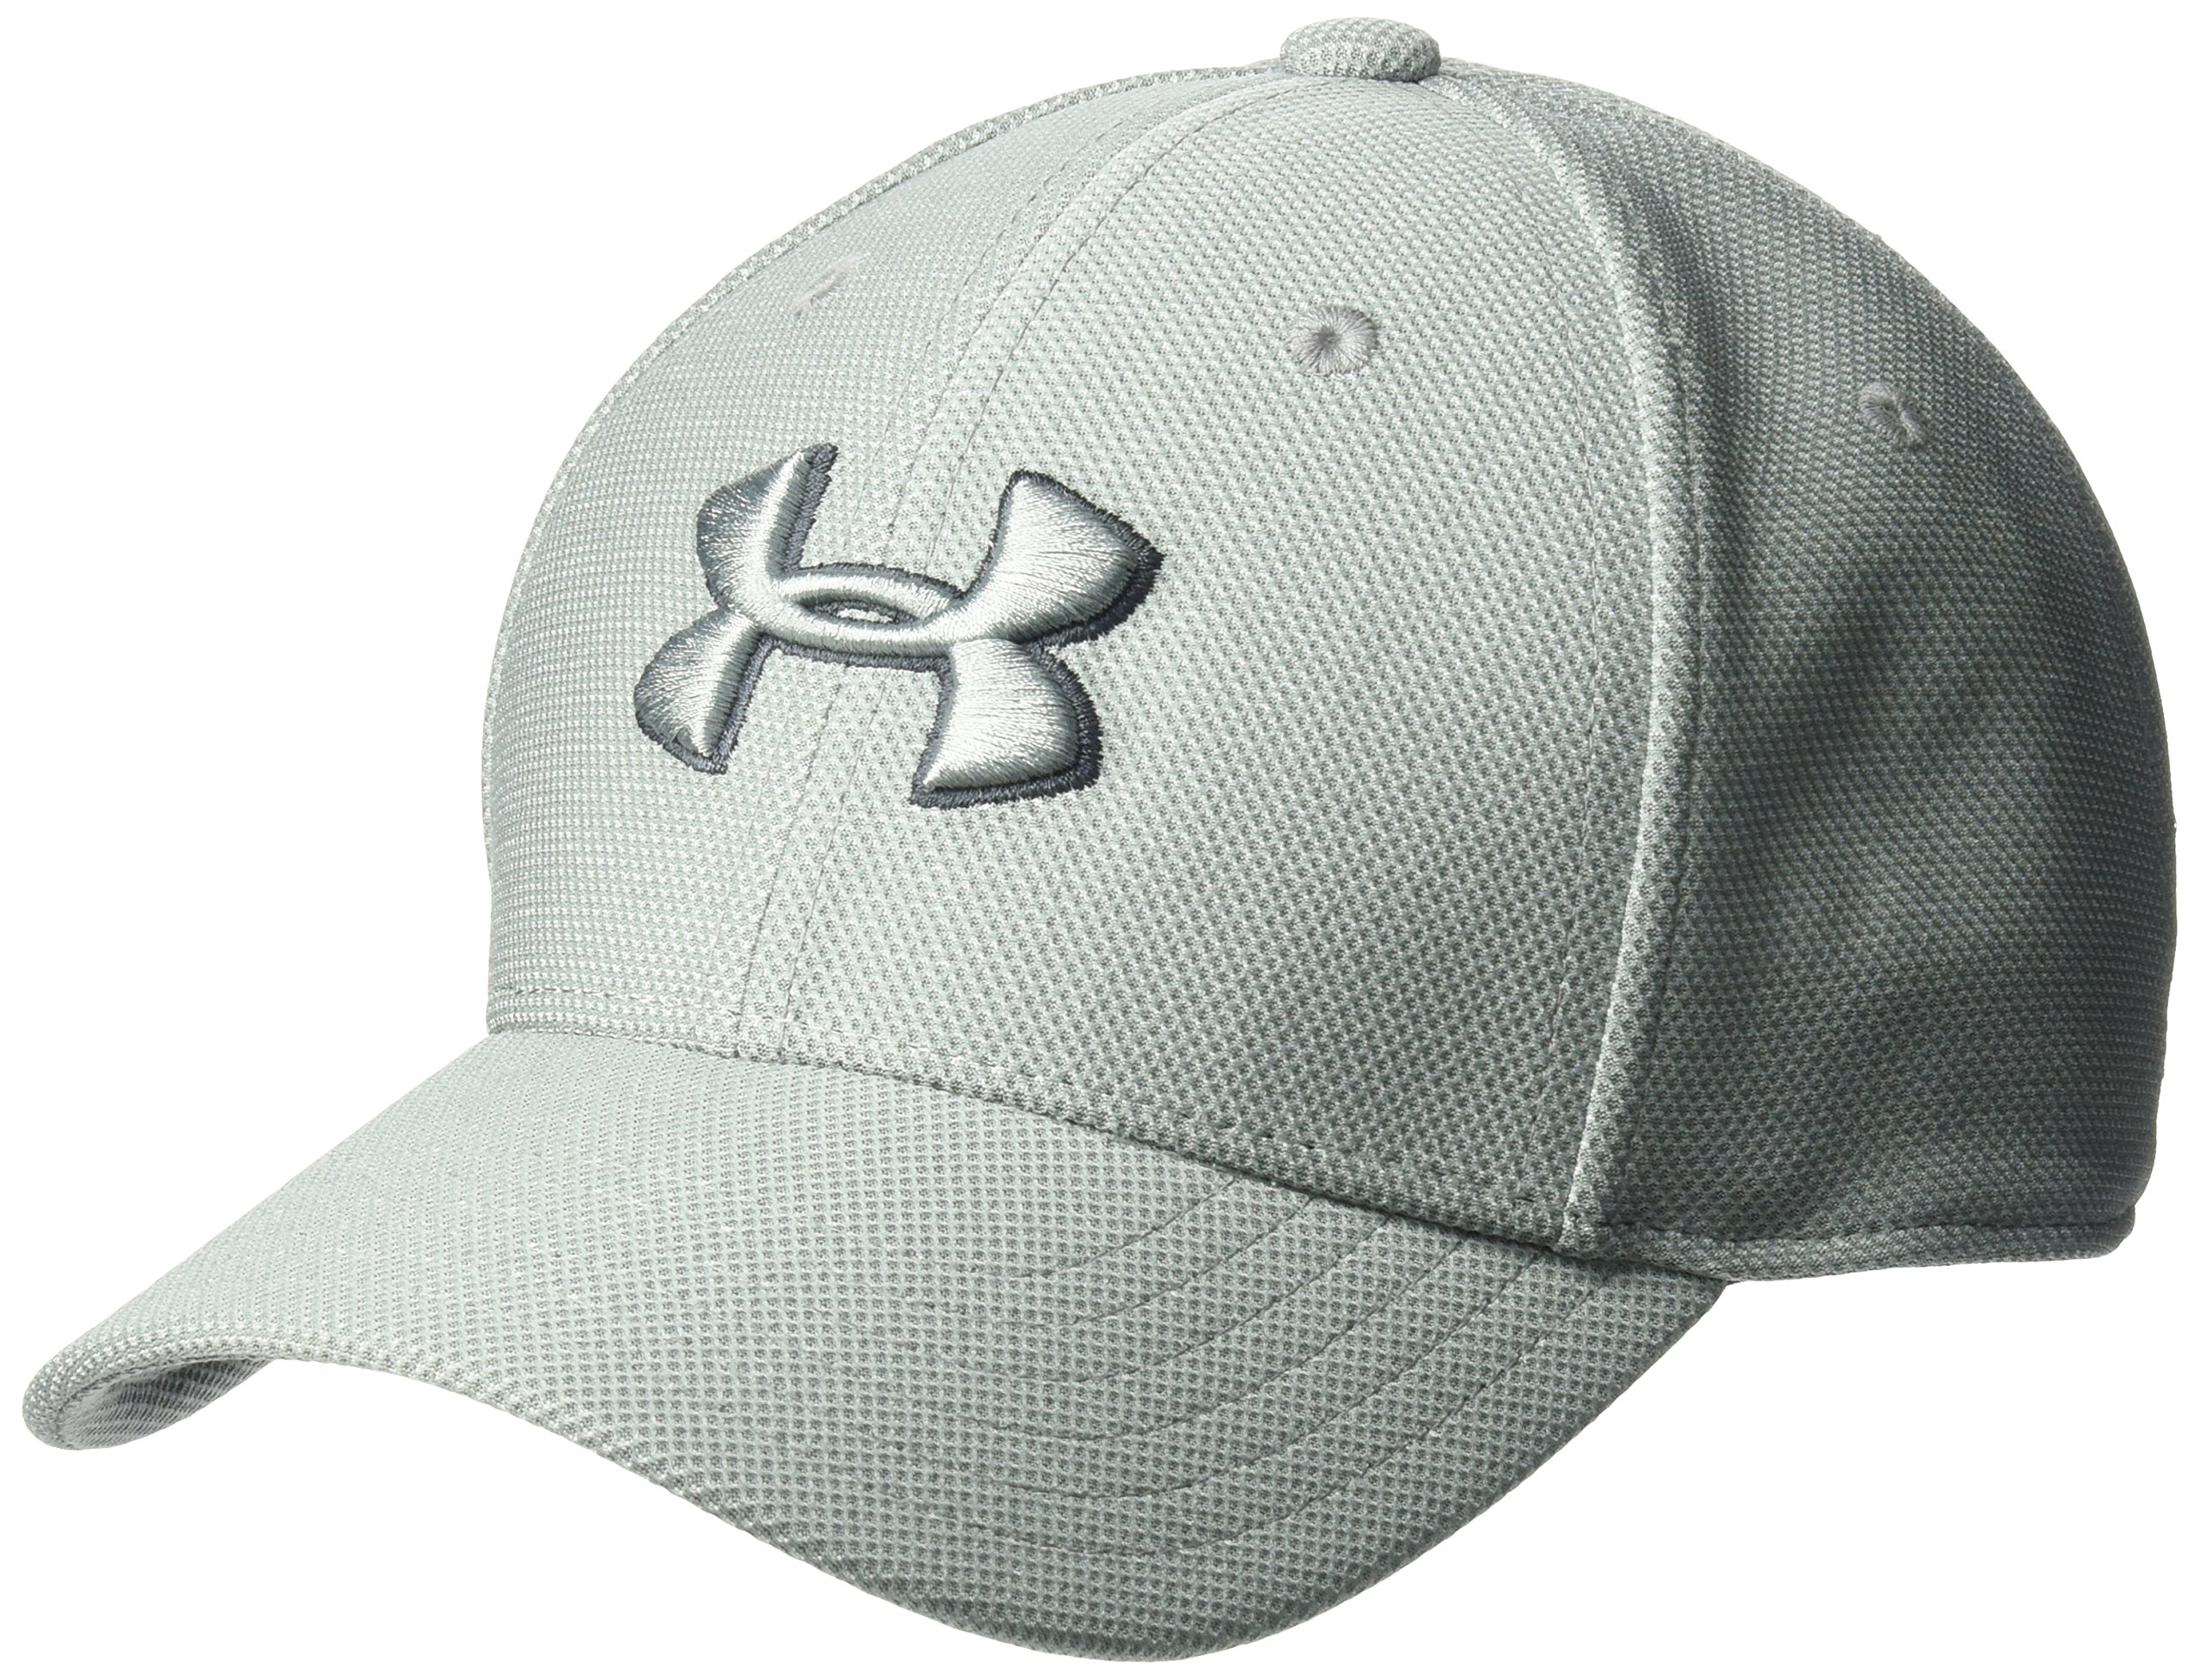 Under Armour Boys' Heathered Blitzing 3.0 Cap, Steel (035)/Steel, Youth X-Small/Small